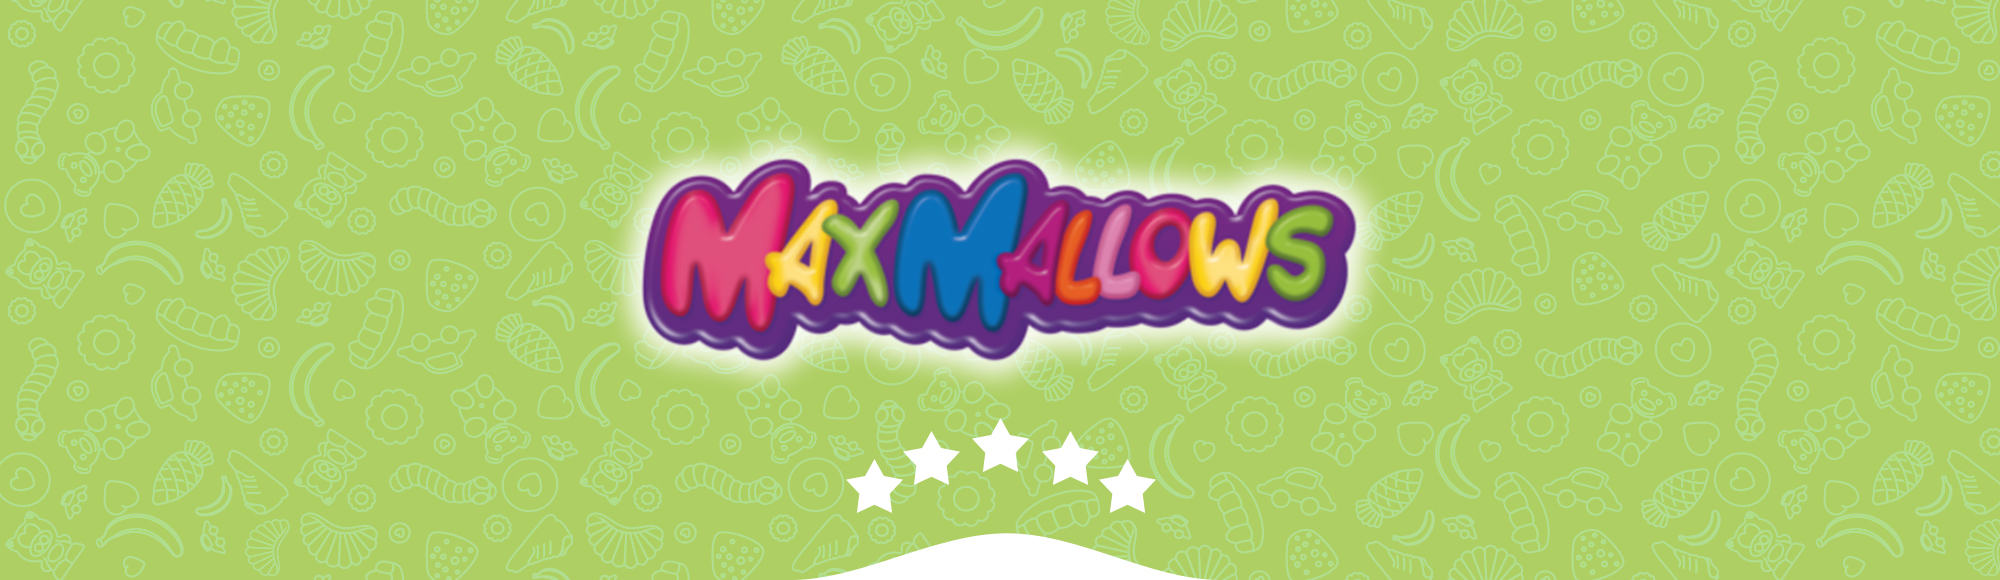 Banner Maxmallows